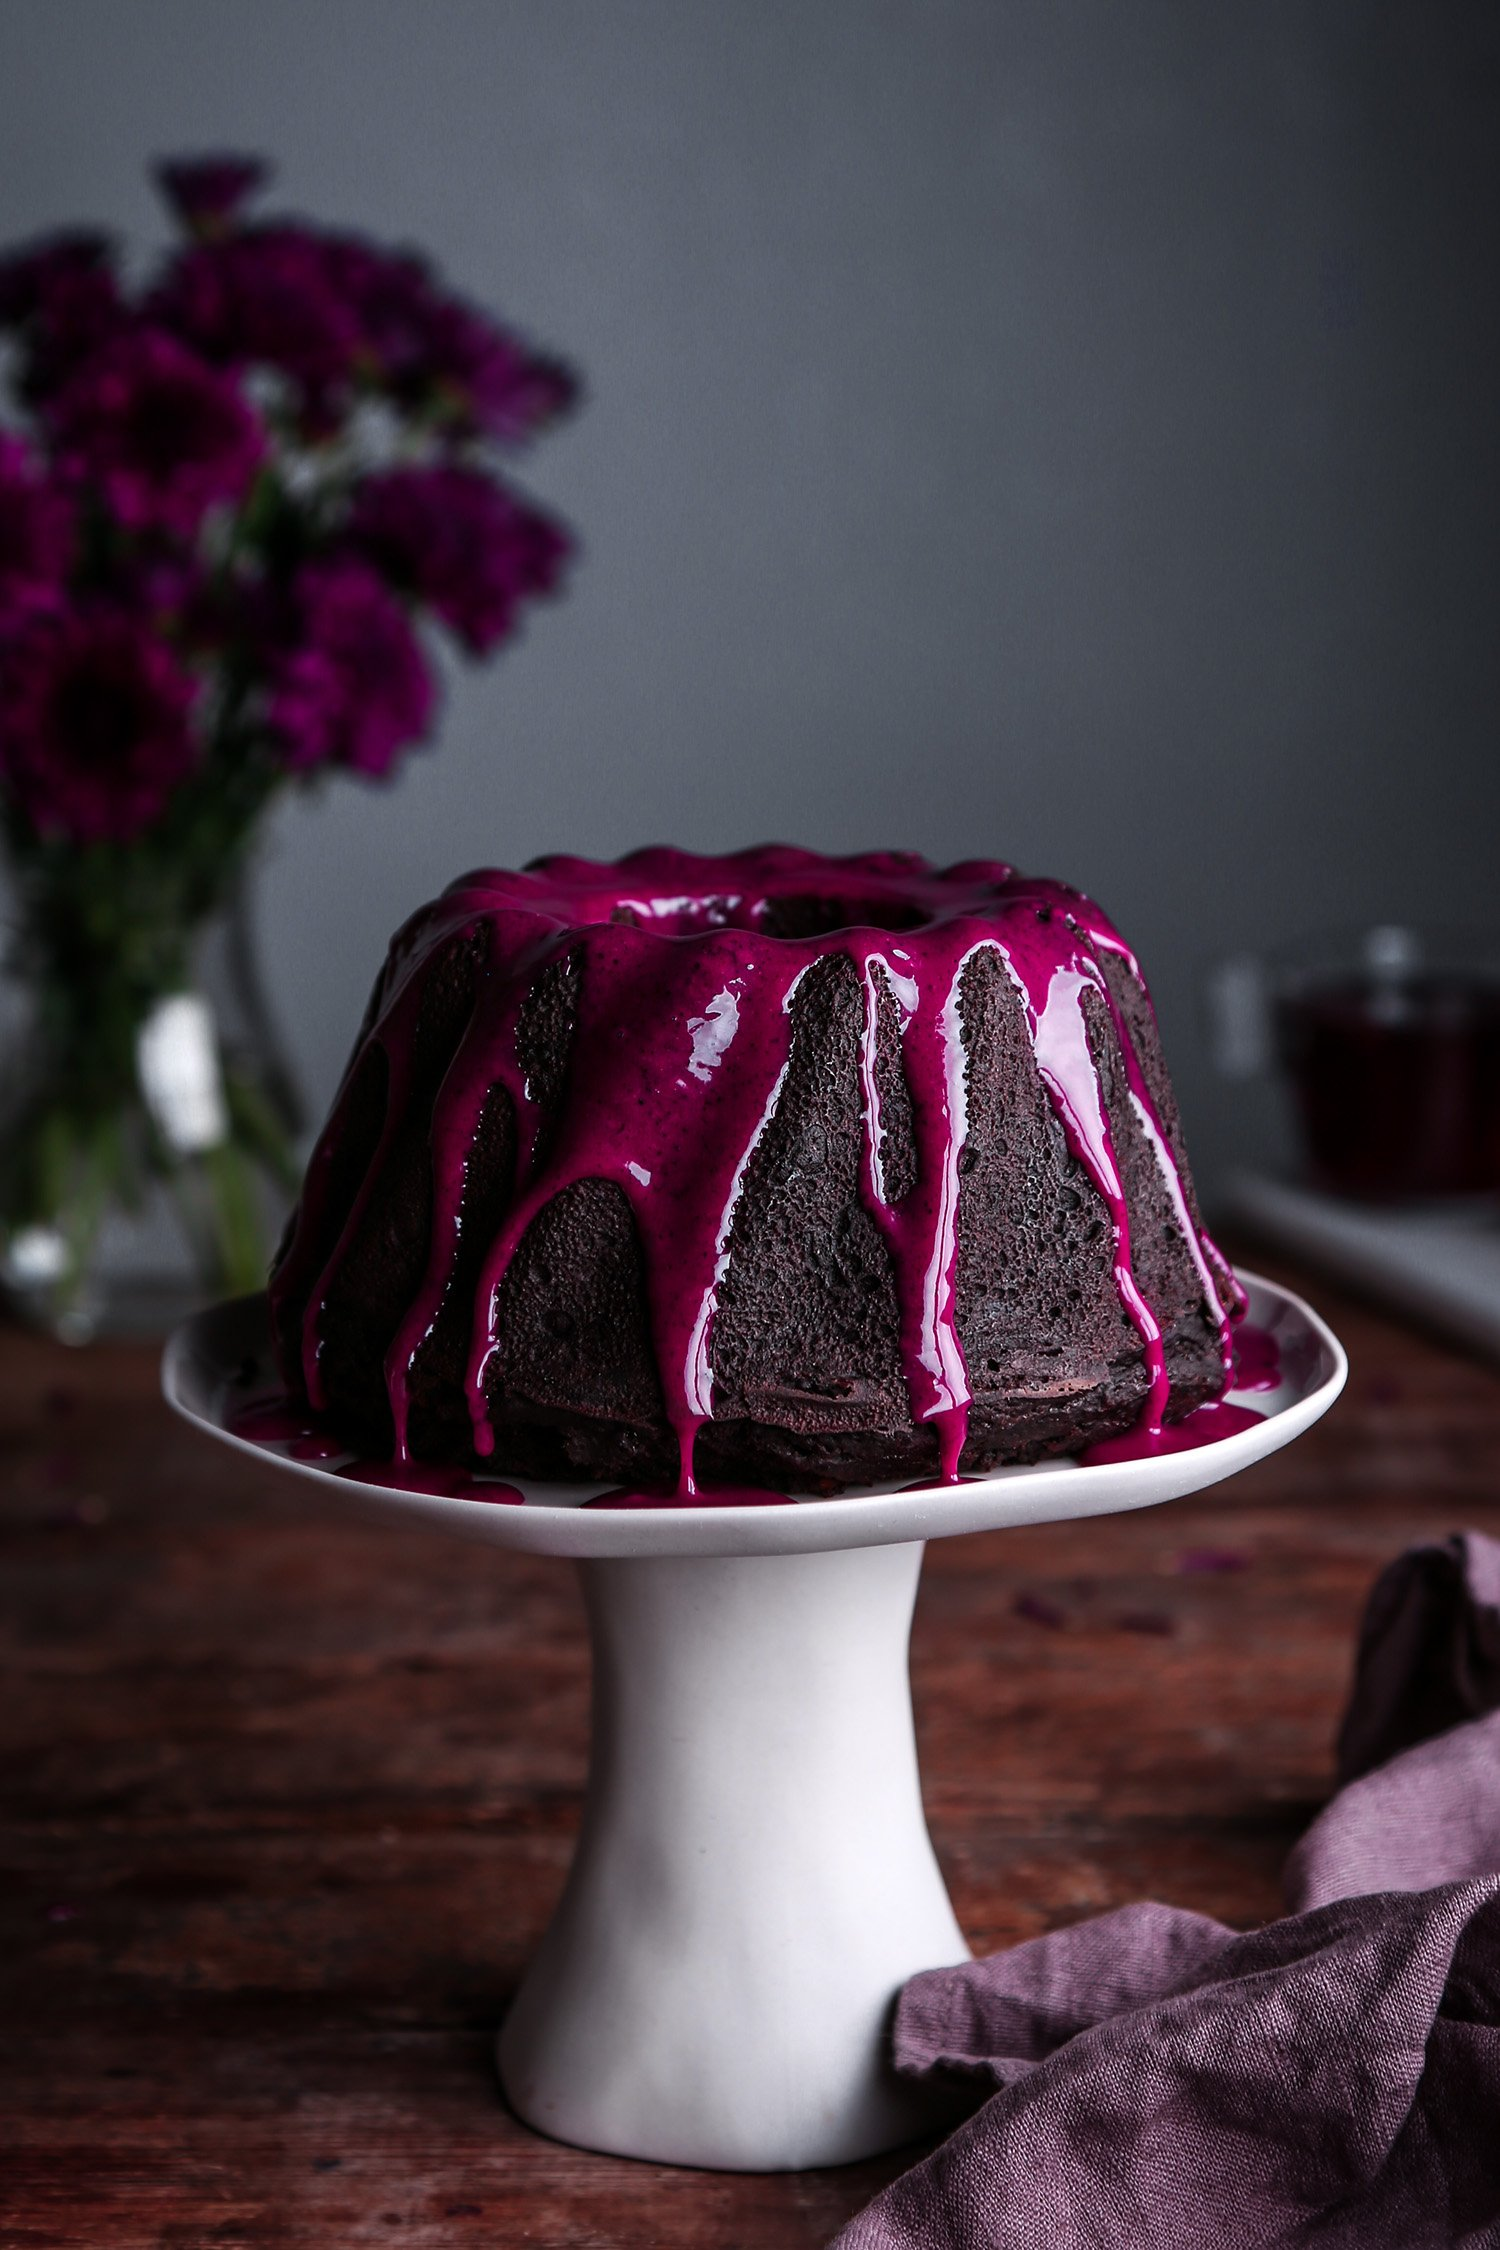 Chocolate Bundt Cake with Hibiscus Cream Cheese Glaze | Free of gluten, dairy, eggs, and refined sugar, plus vegan friendly